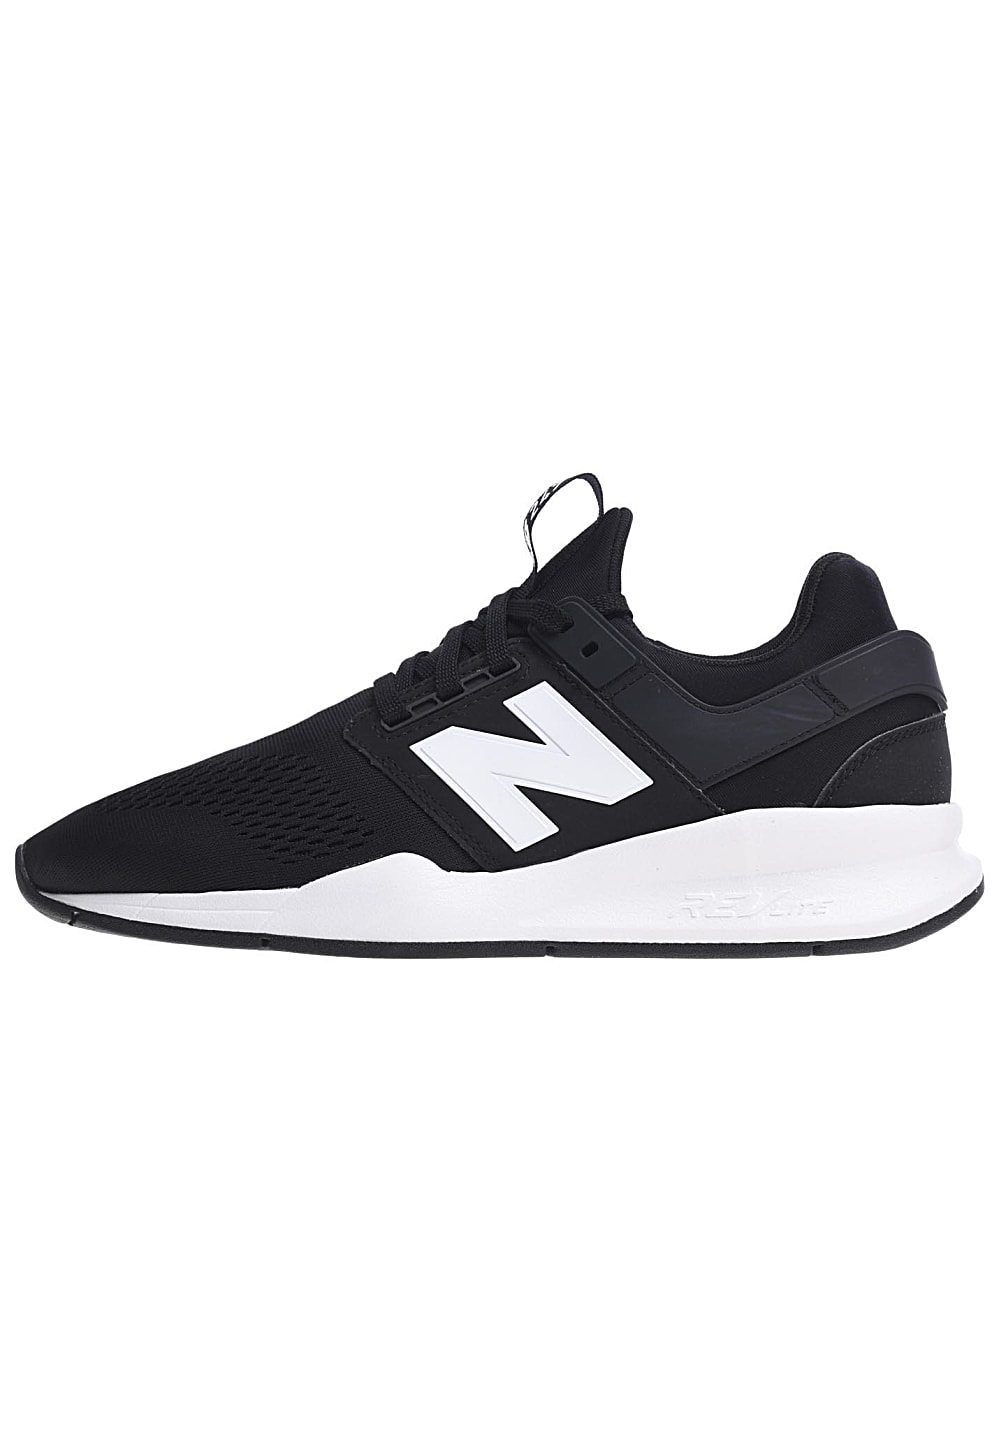 NEW BALANCE MS247 D Sneakers for Men Black Planet Sports